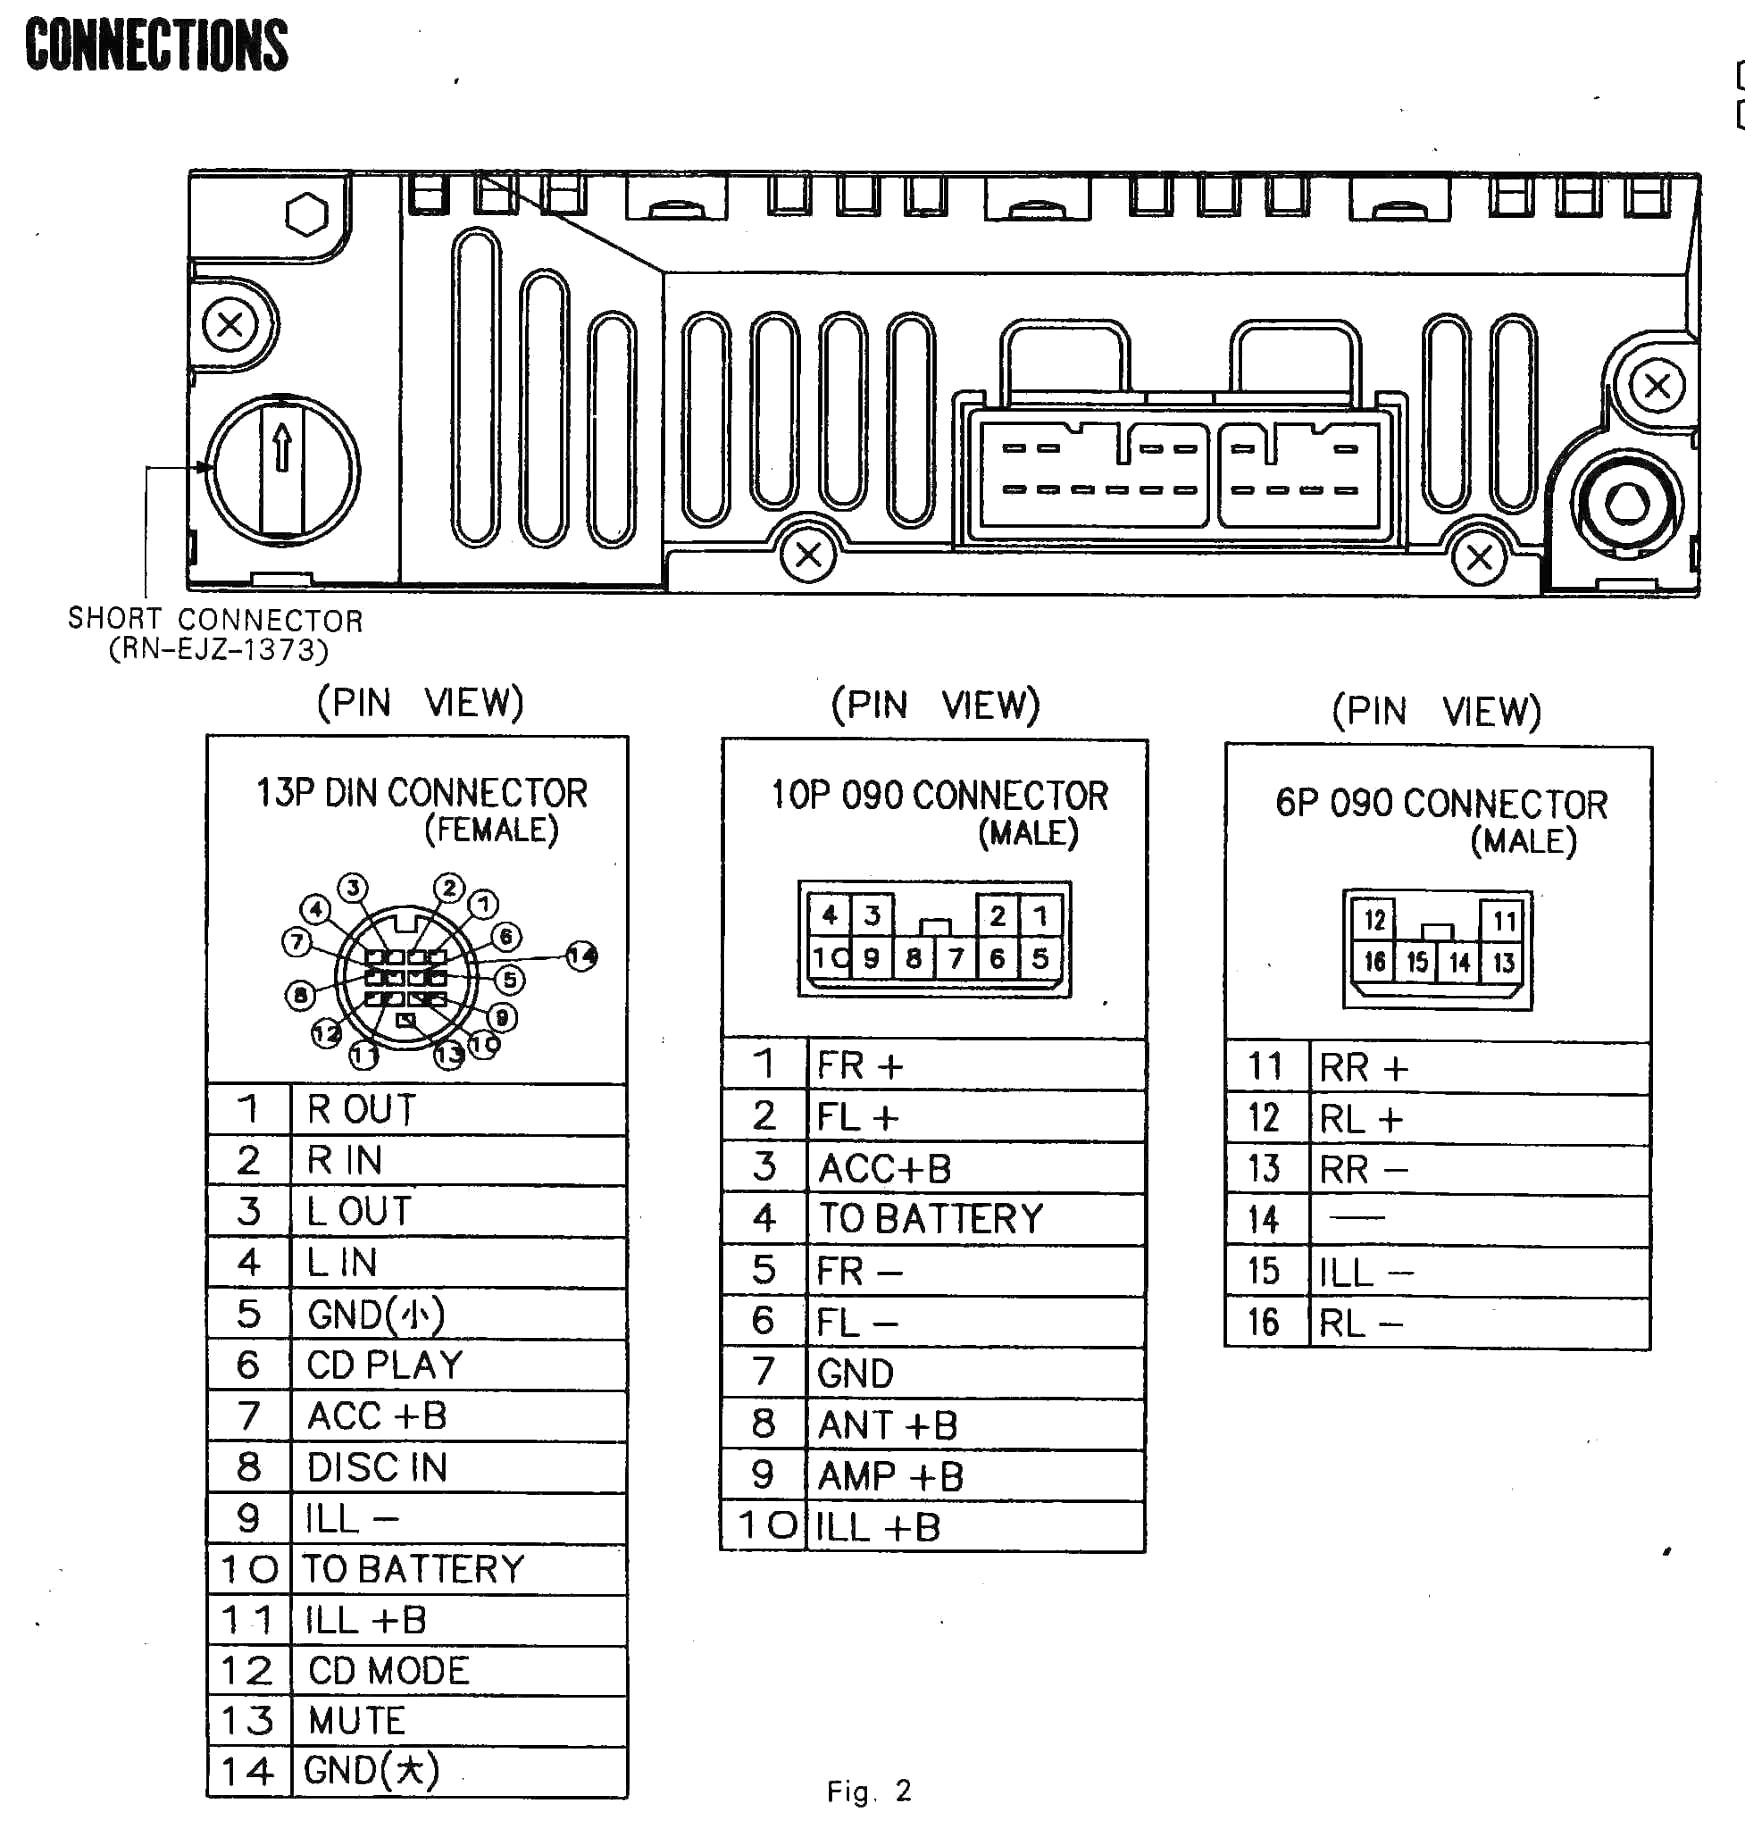 2000 vw jetta stereo wiring diagram 2001 vw jetta radio wiring diagram | free wiring diagram